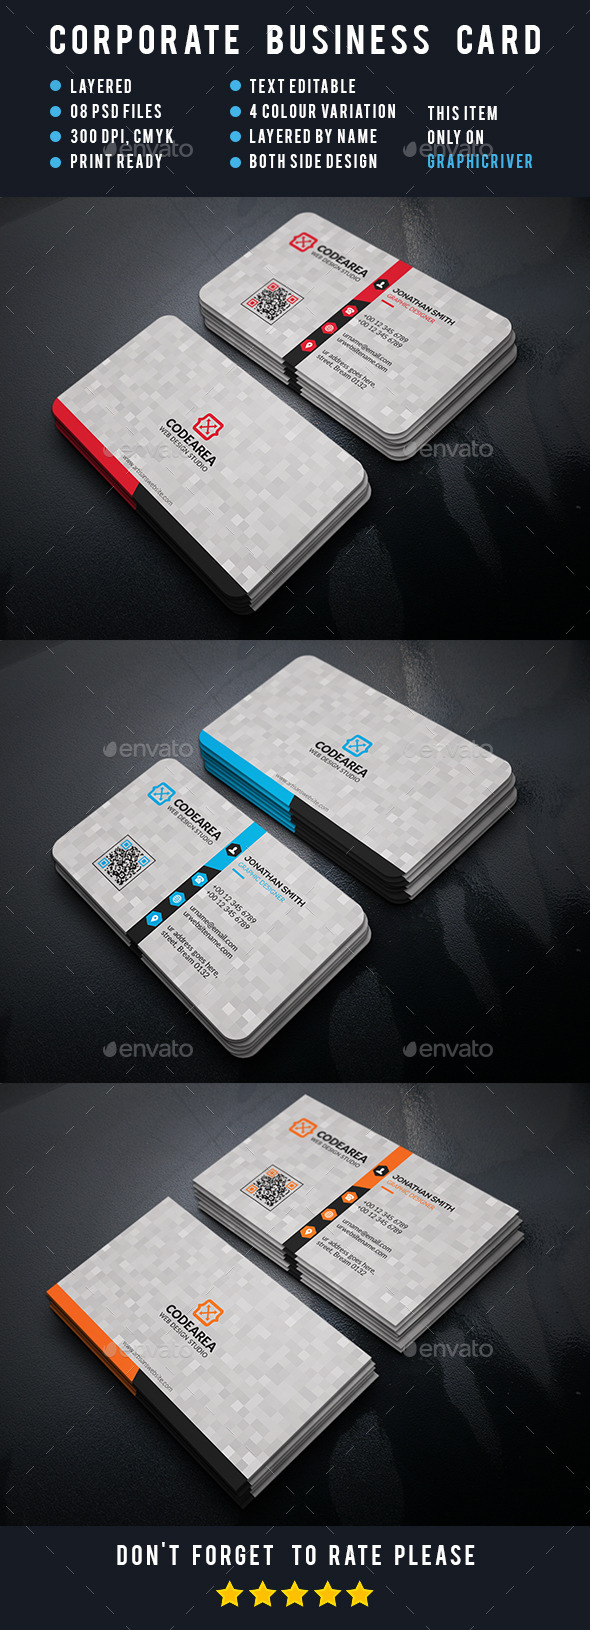 Artisans Corporate Business Card - Business Cards Print Templates